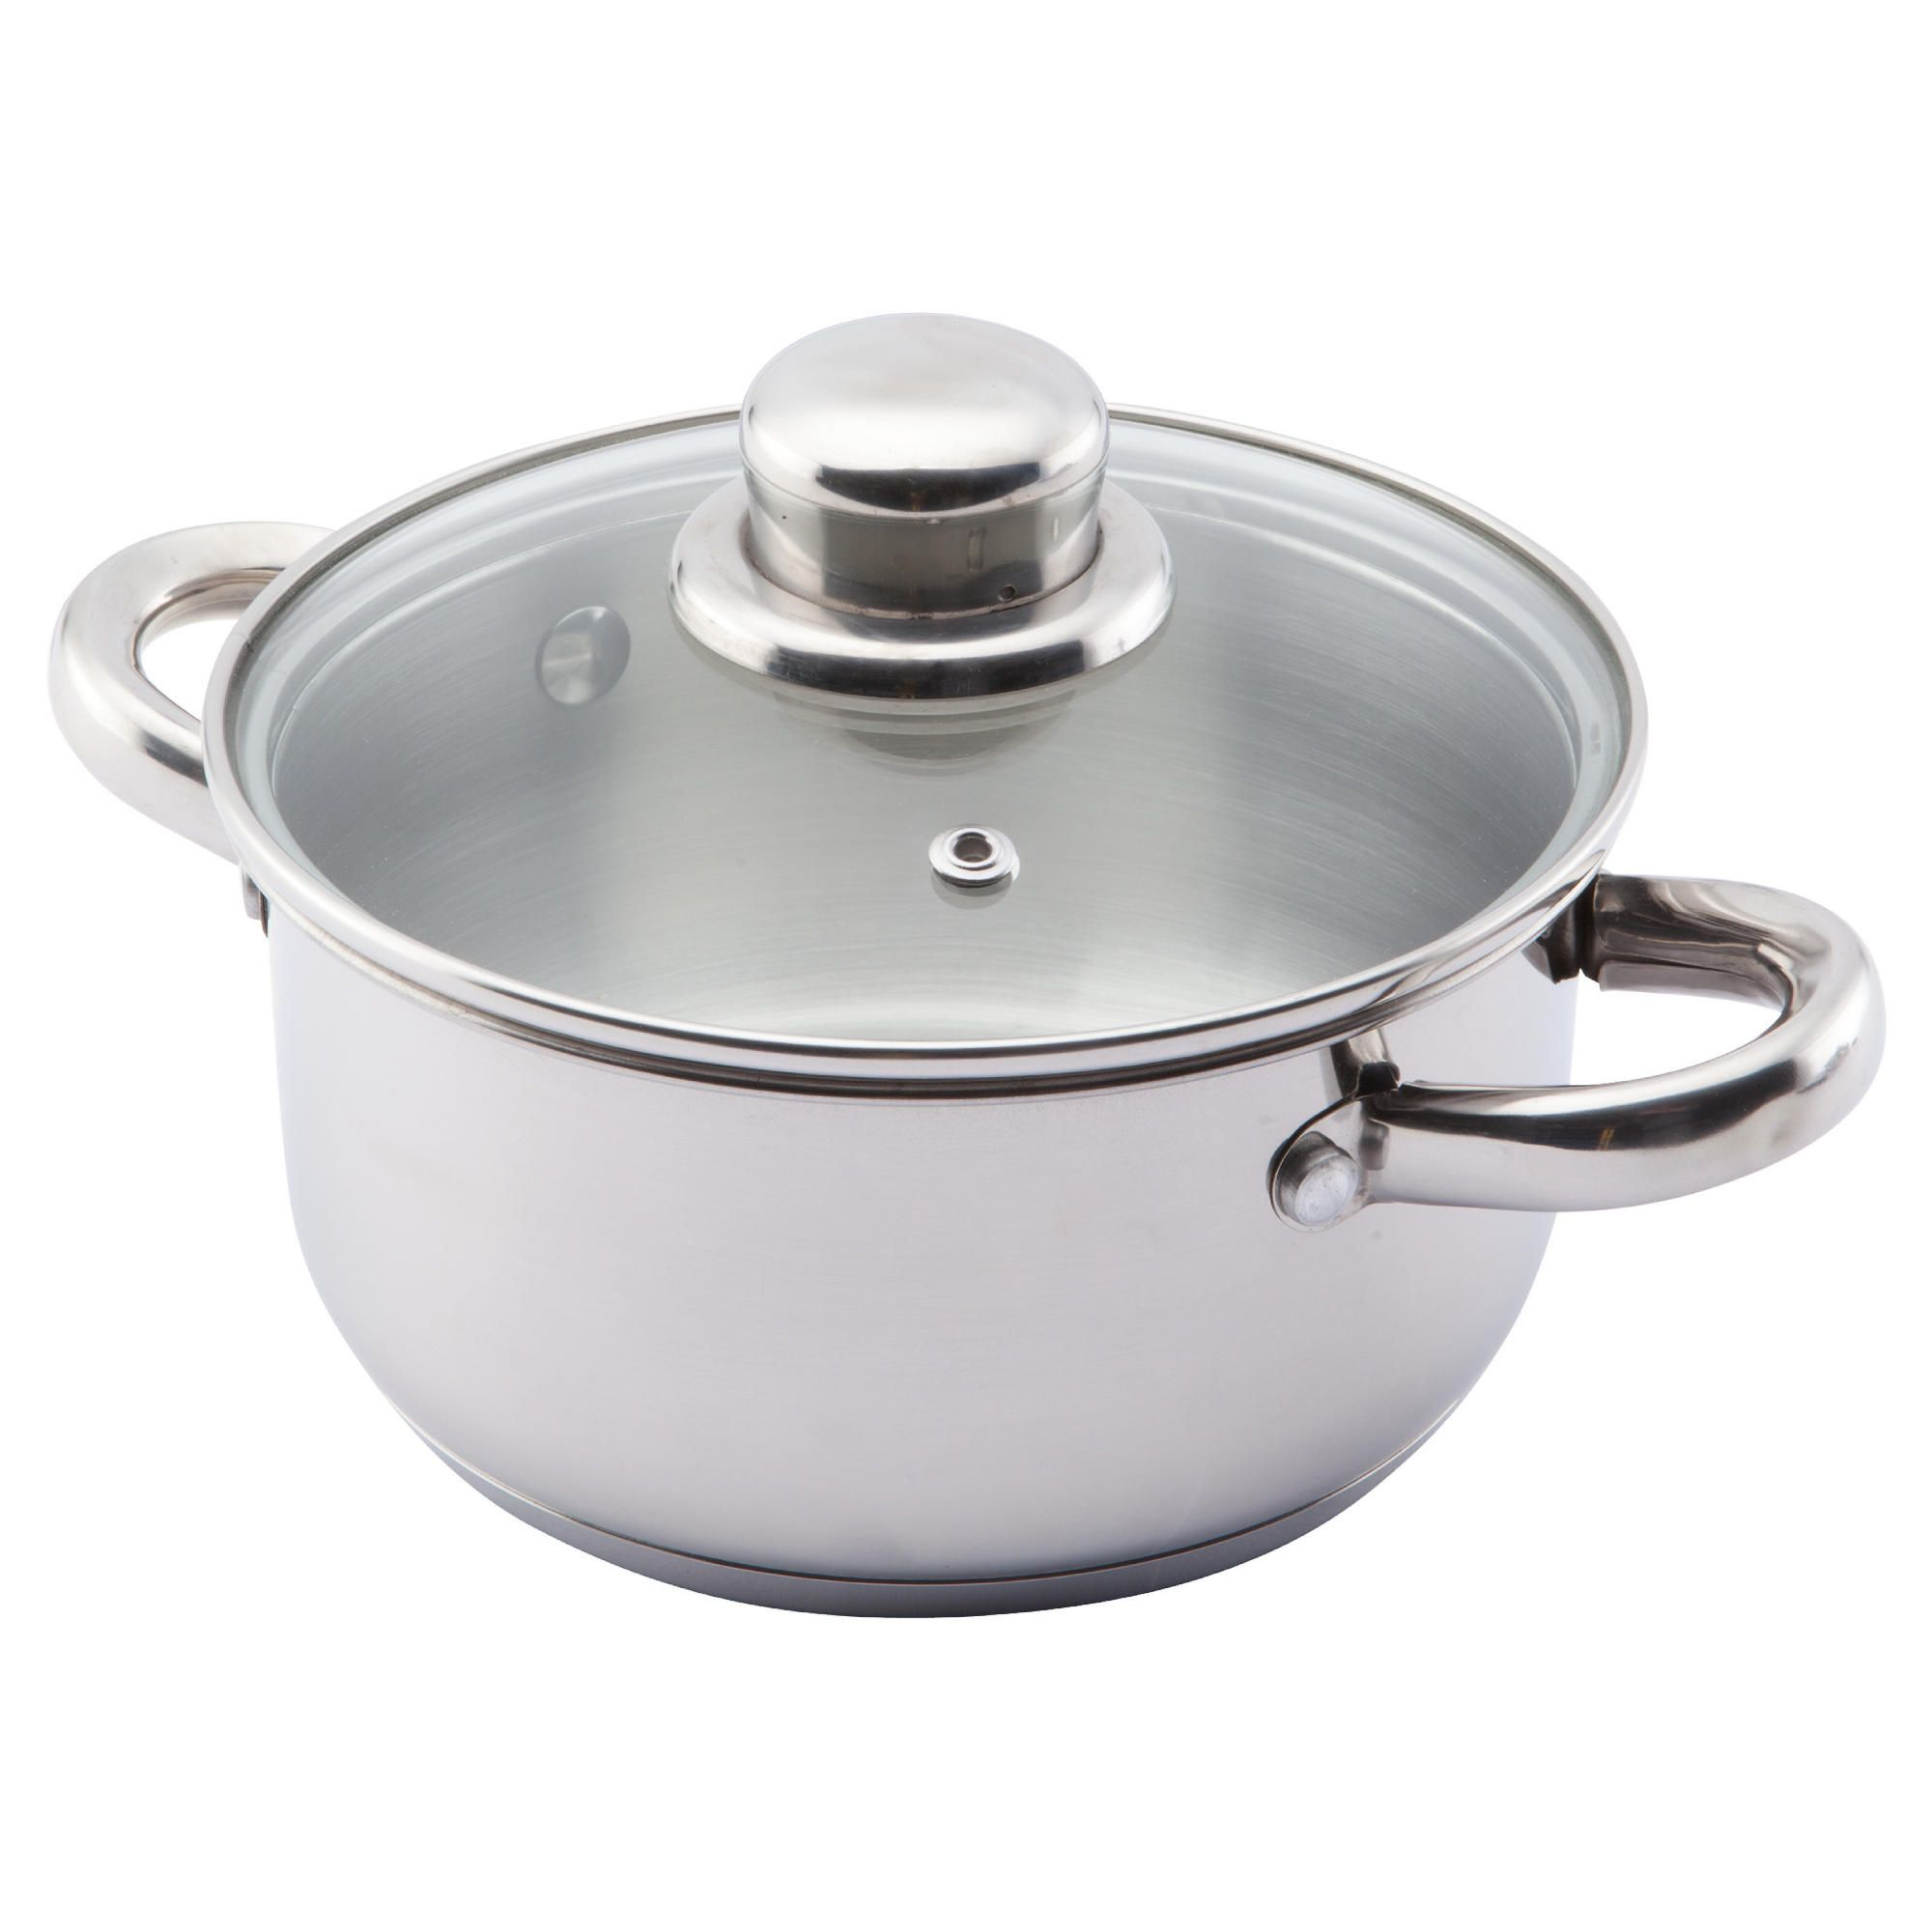 Home and garden kitchen pots and pans viners elements for Stainless steel elements